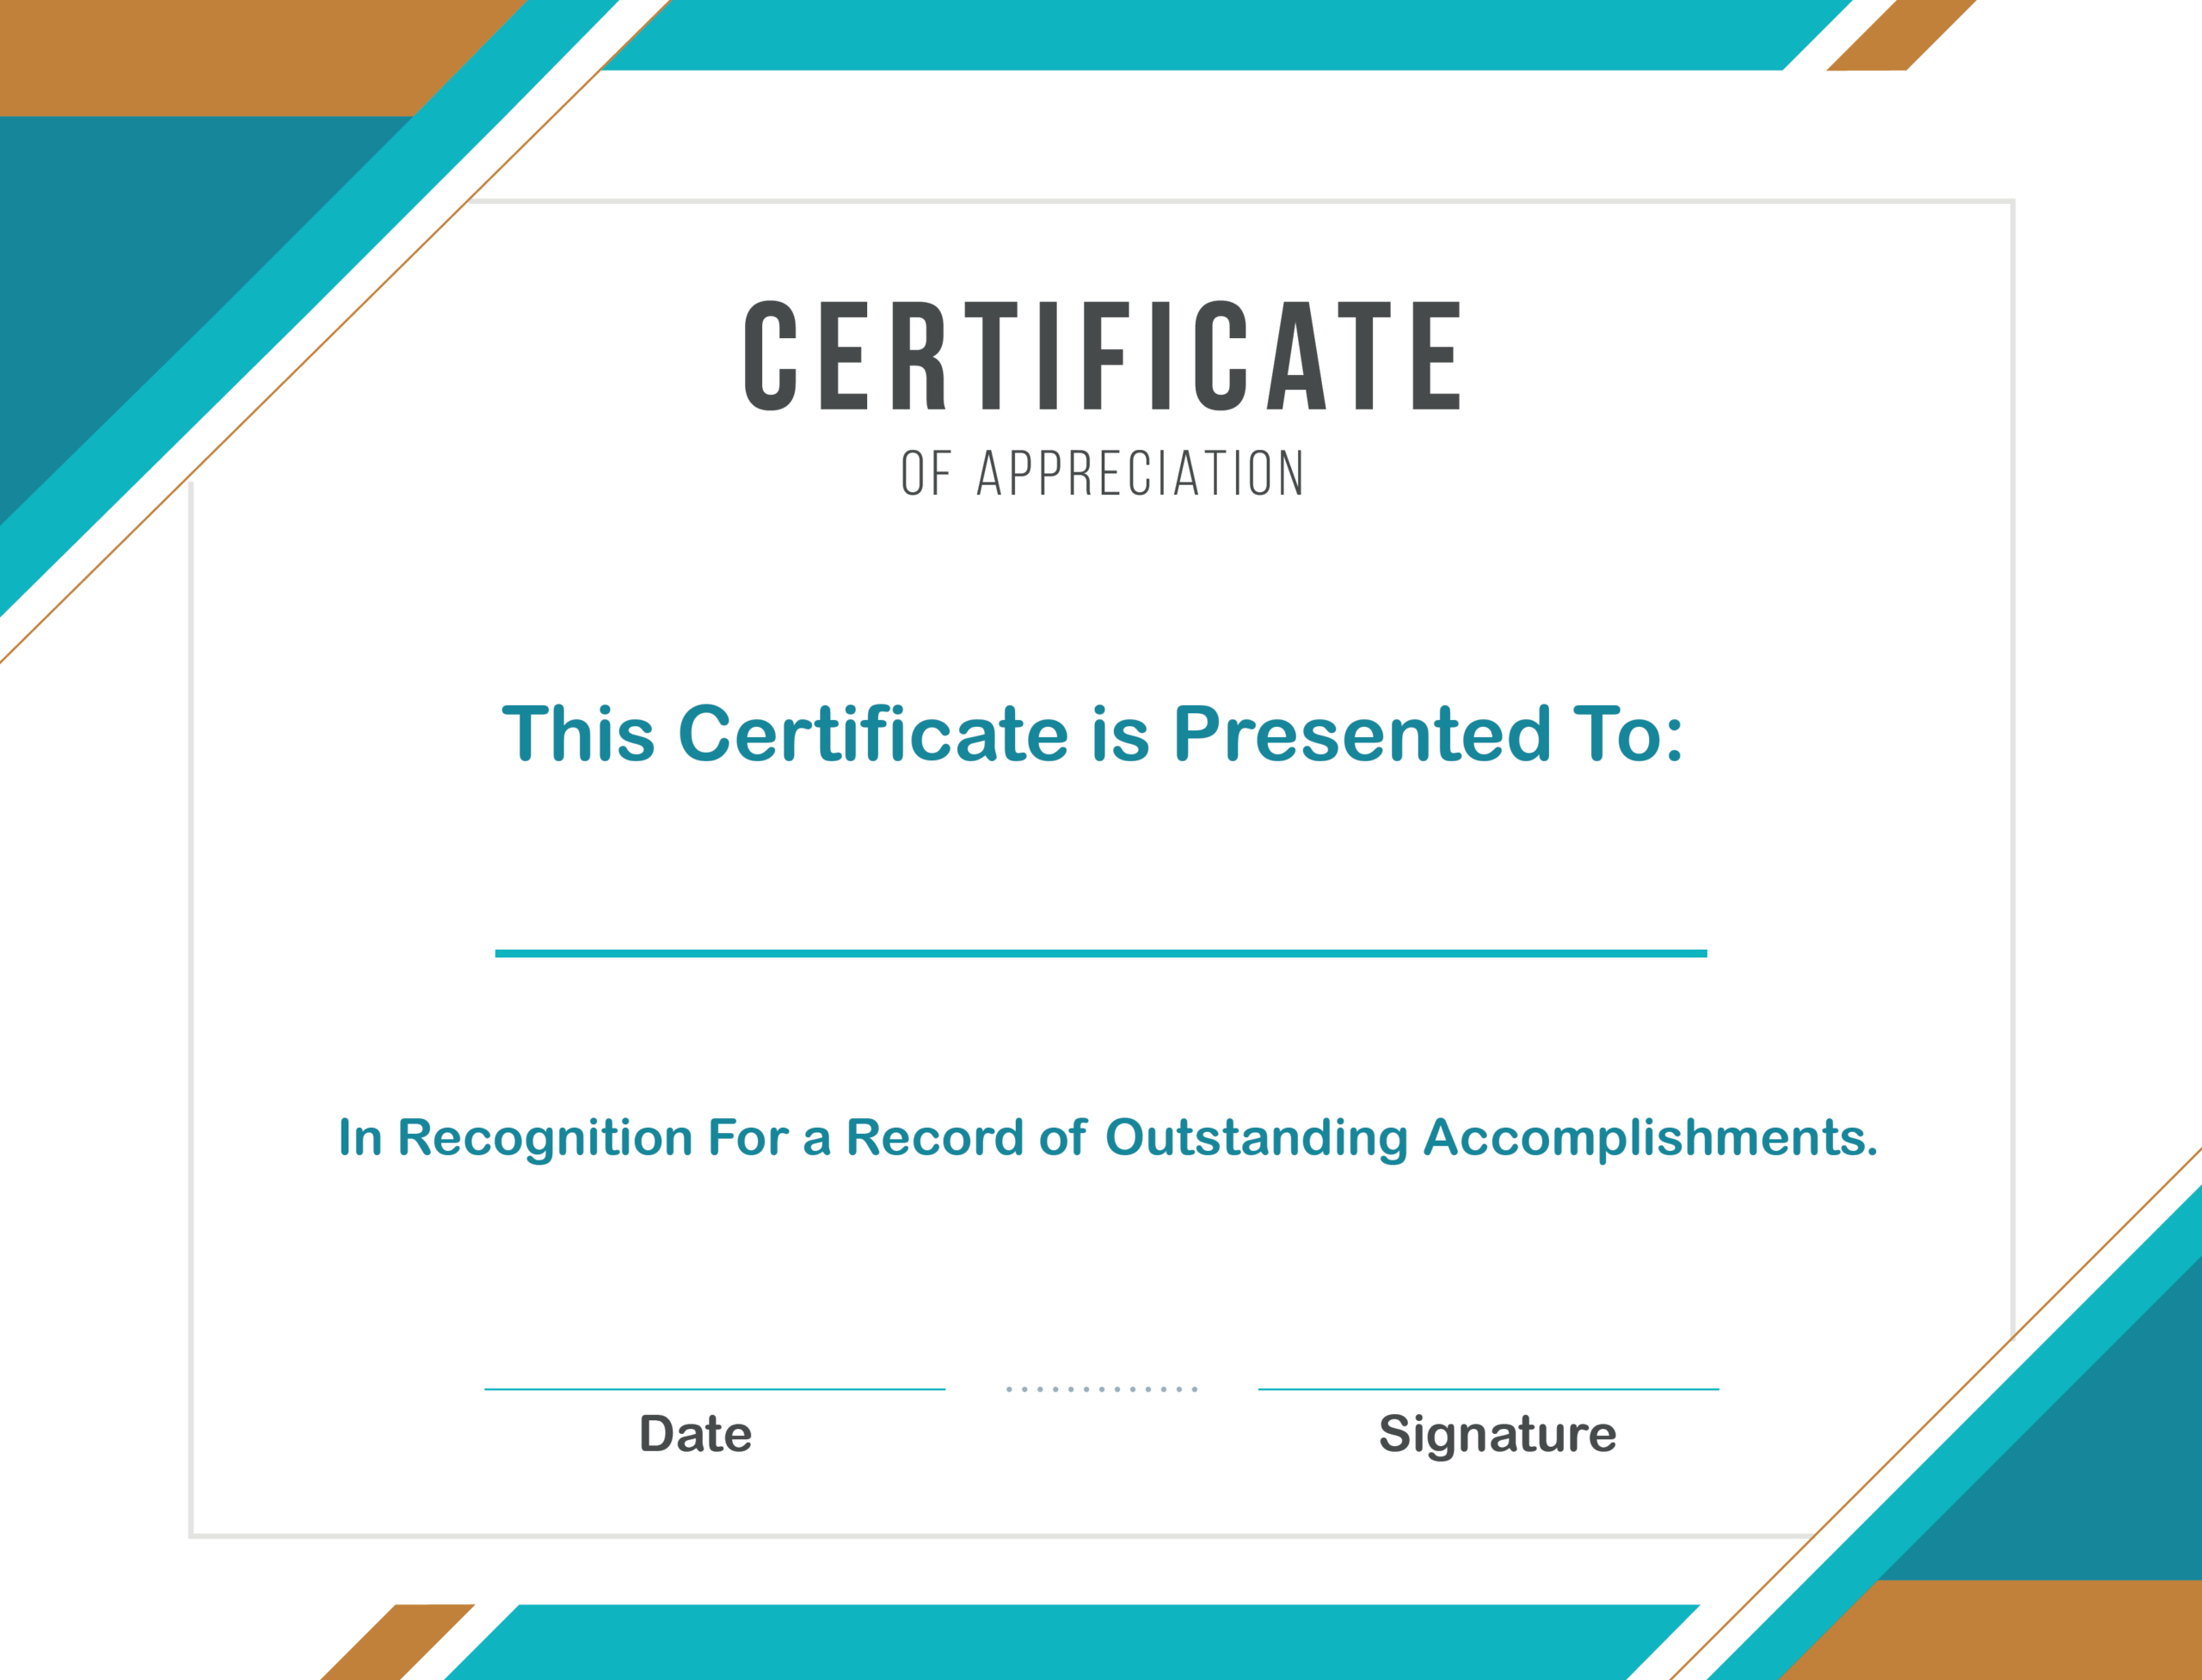 Recognition Certificate Templates For Word – Tunu.redmini.co Intended For Certificate Of Recognition Word Template